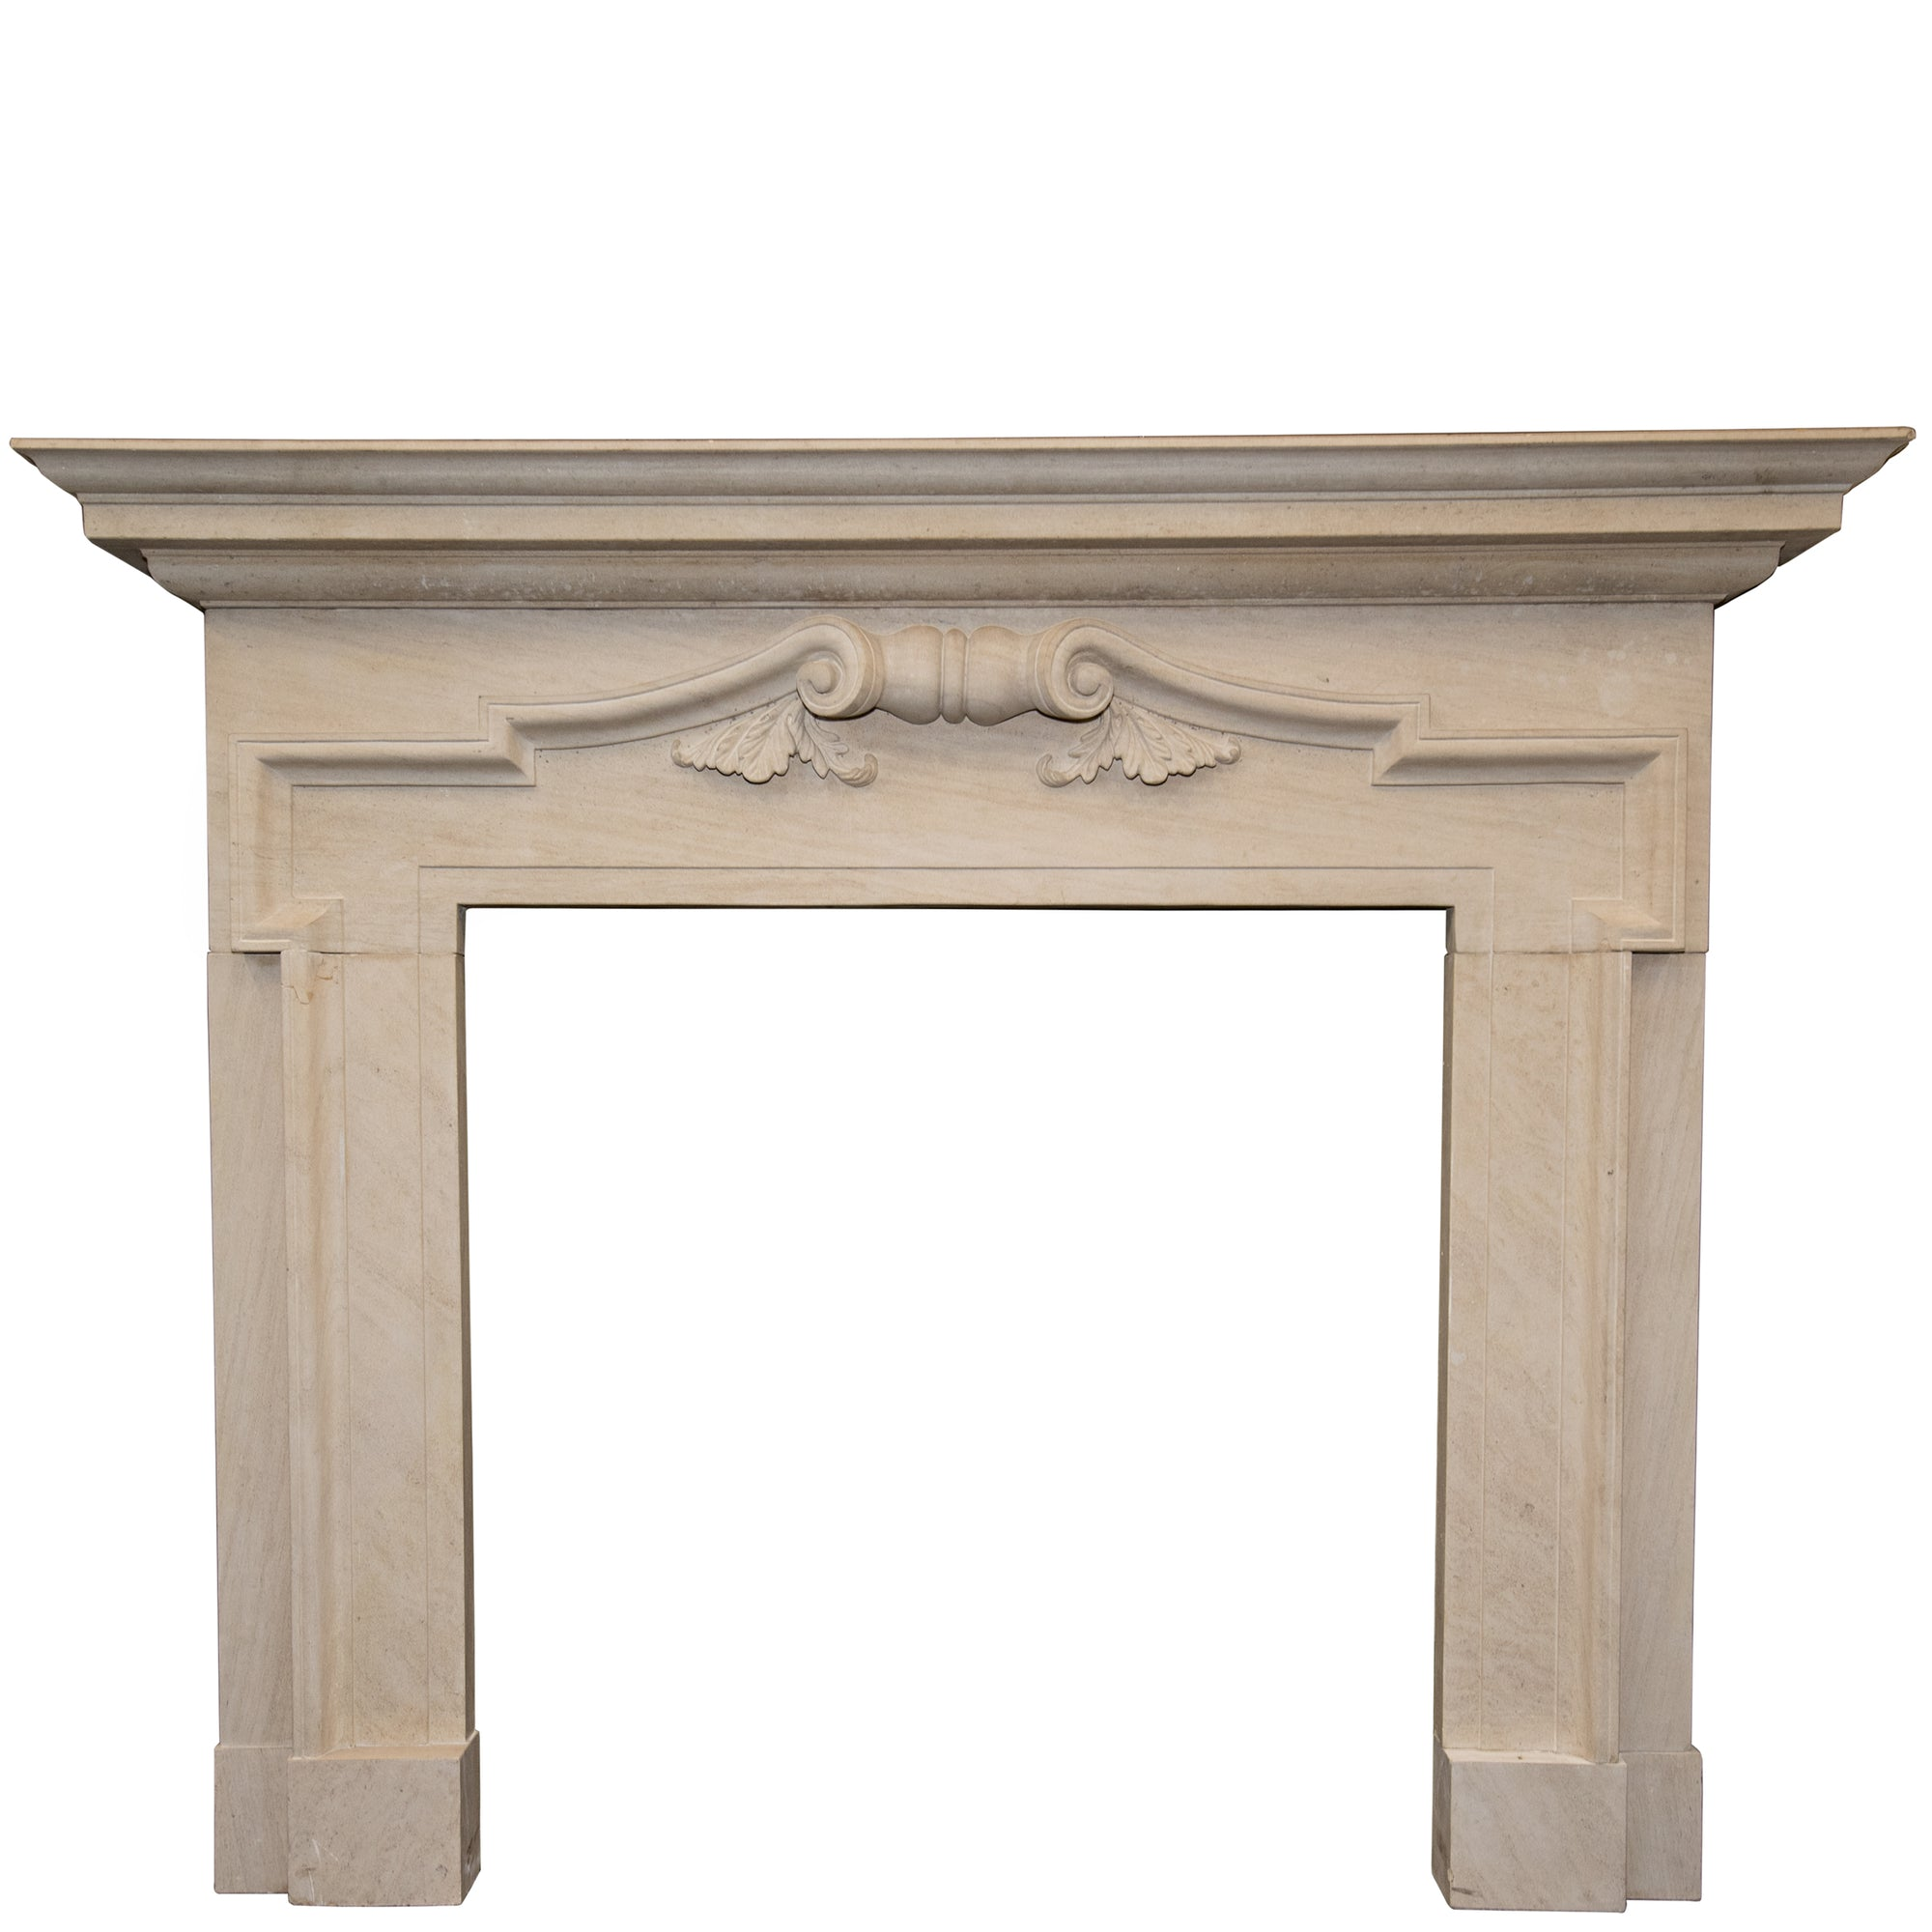 Reclaimed Baroque Style Limestone Fireplace Surround - architectural-forum